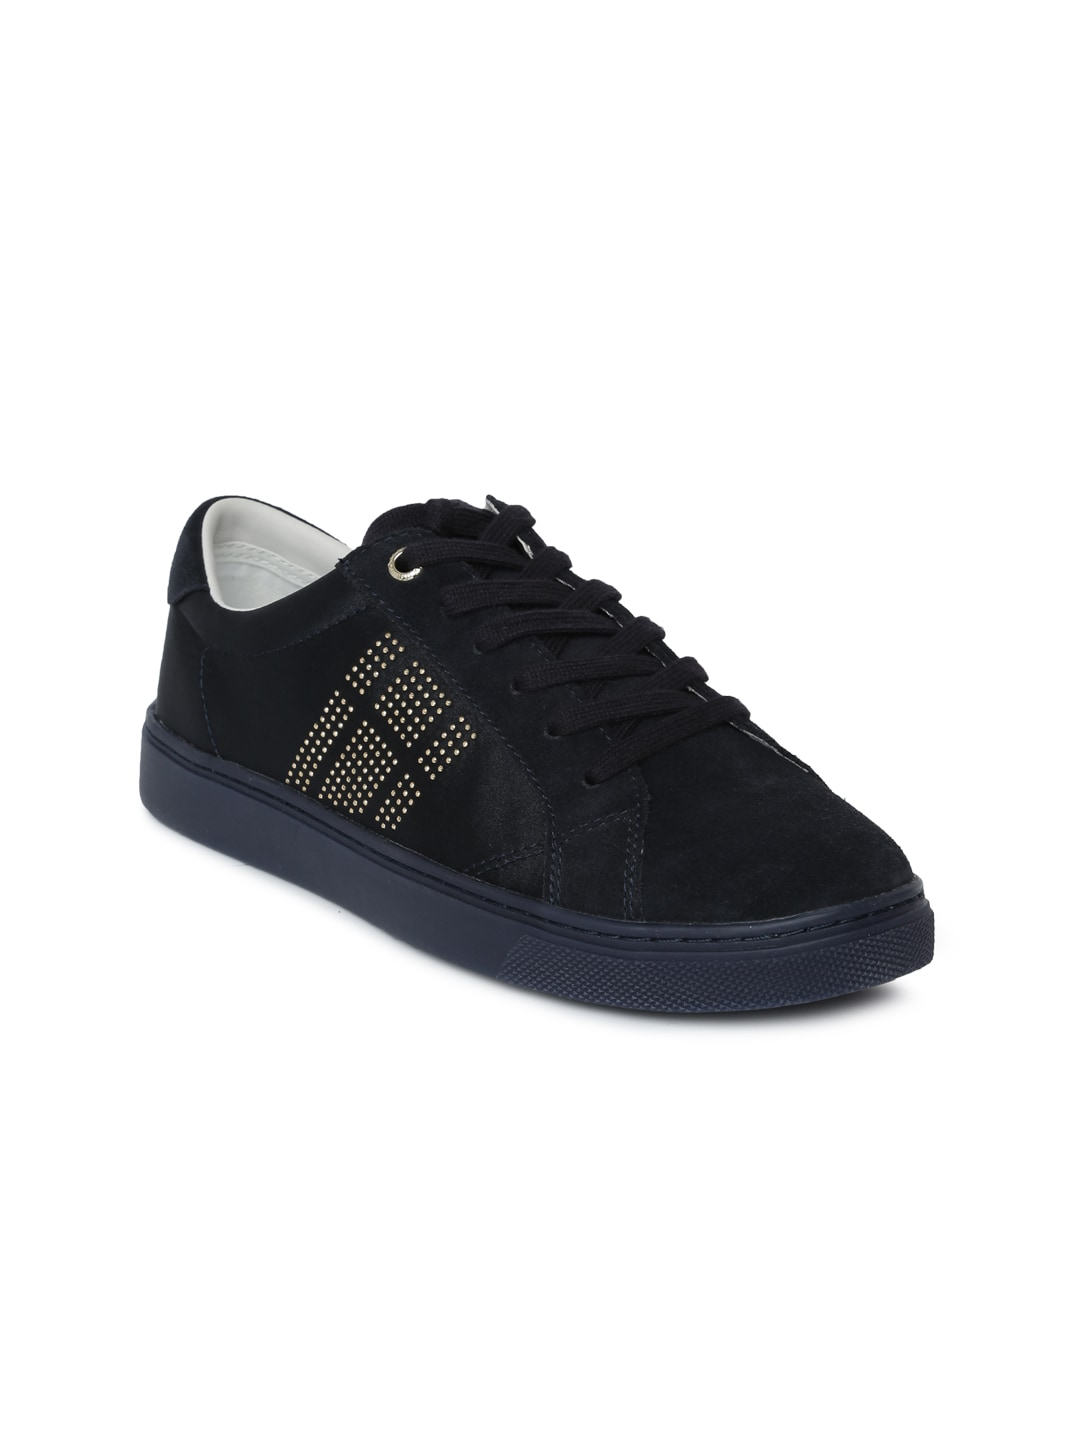 0a4ef9058bc Tommy Hilfiger Shoes - Buy Tommy Hilfiger Shoes Online - Myntra